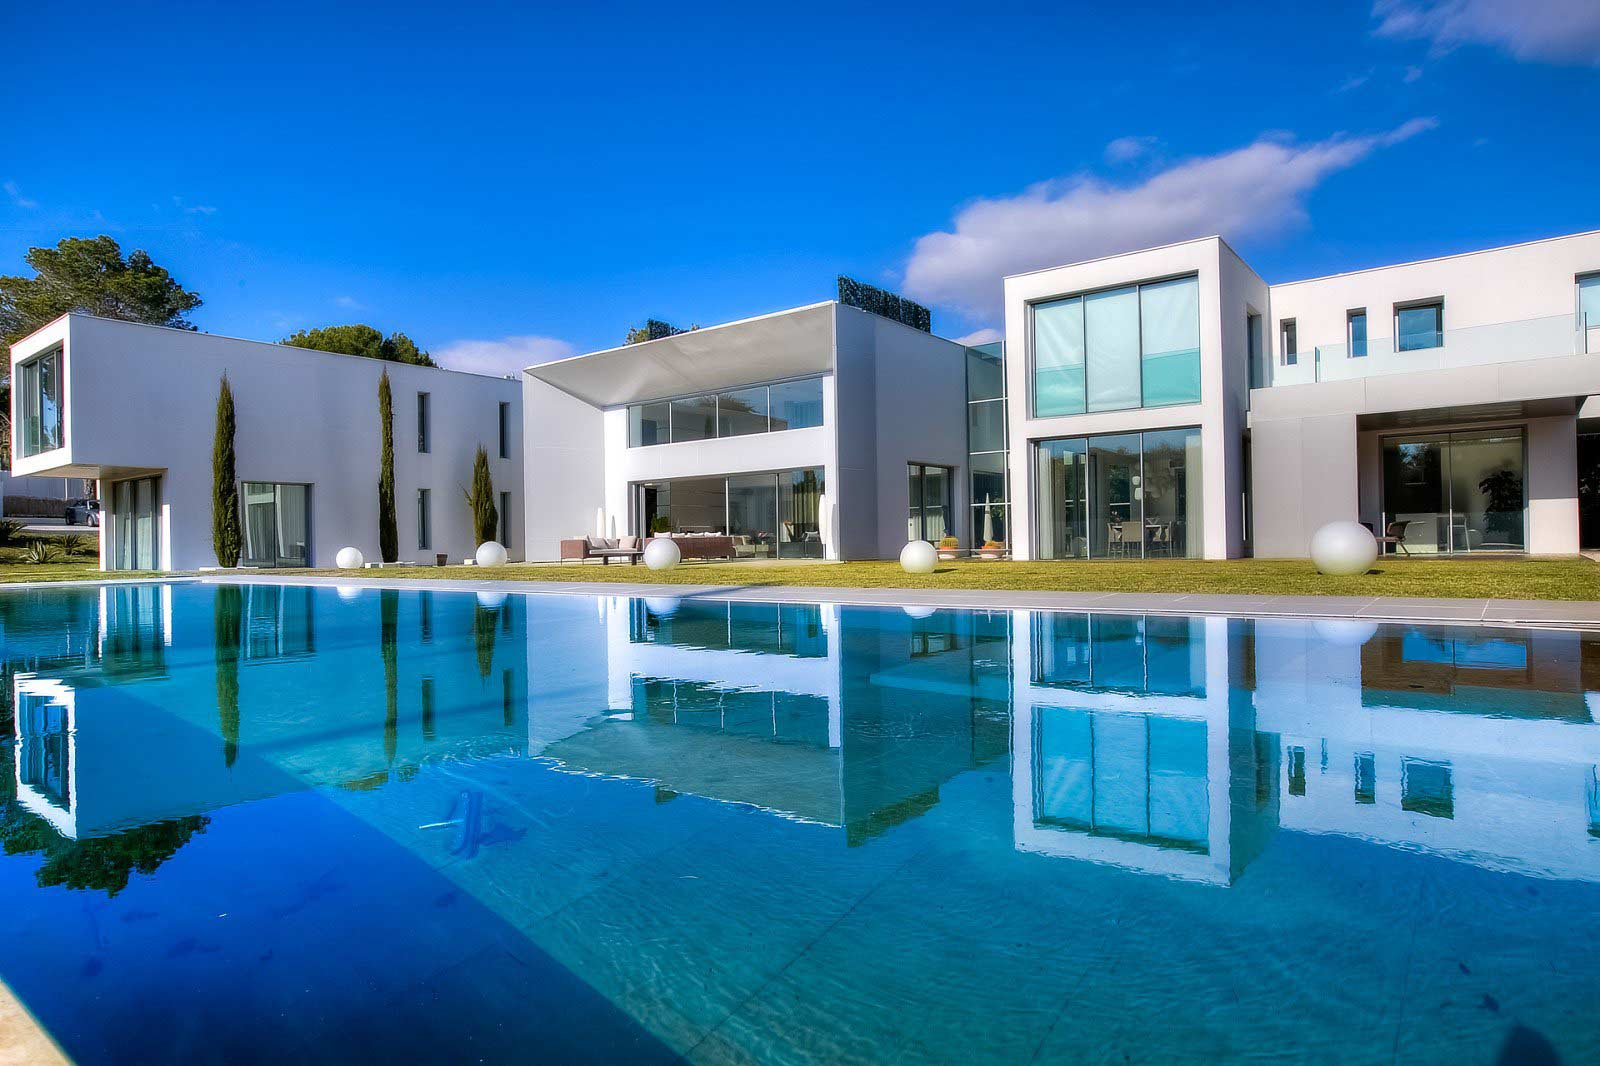 Mougins - France - House , 9 rooms, 6 bedrooms - Slideshow Picture 2